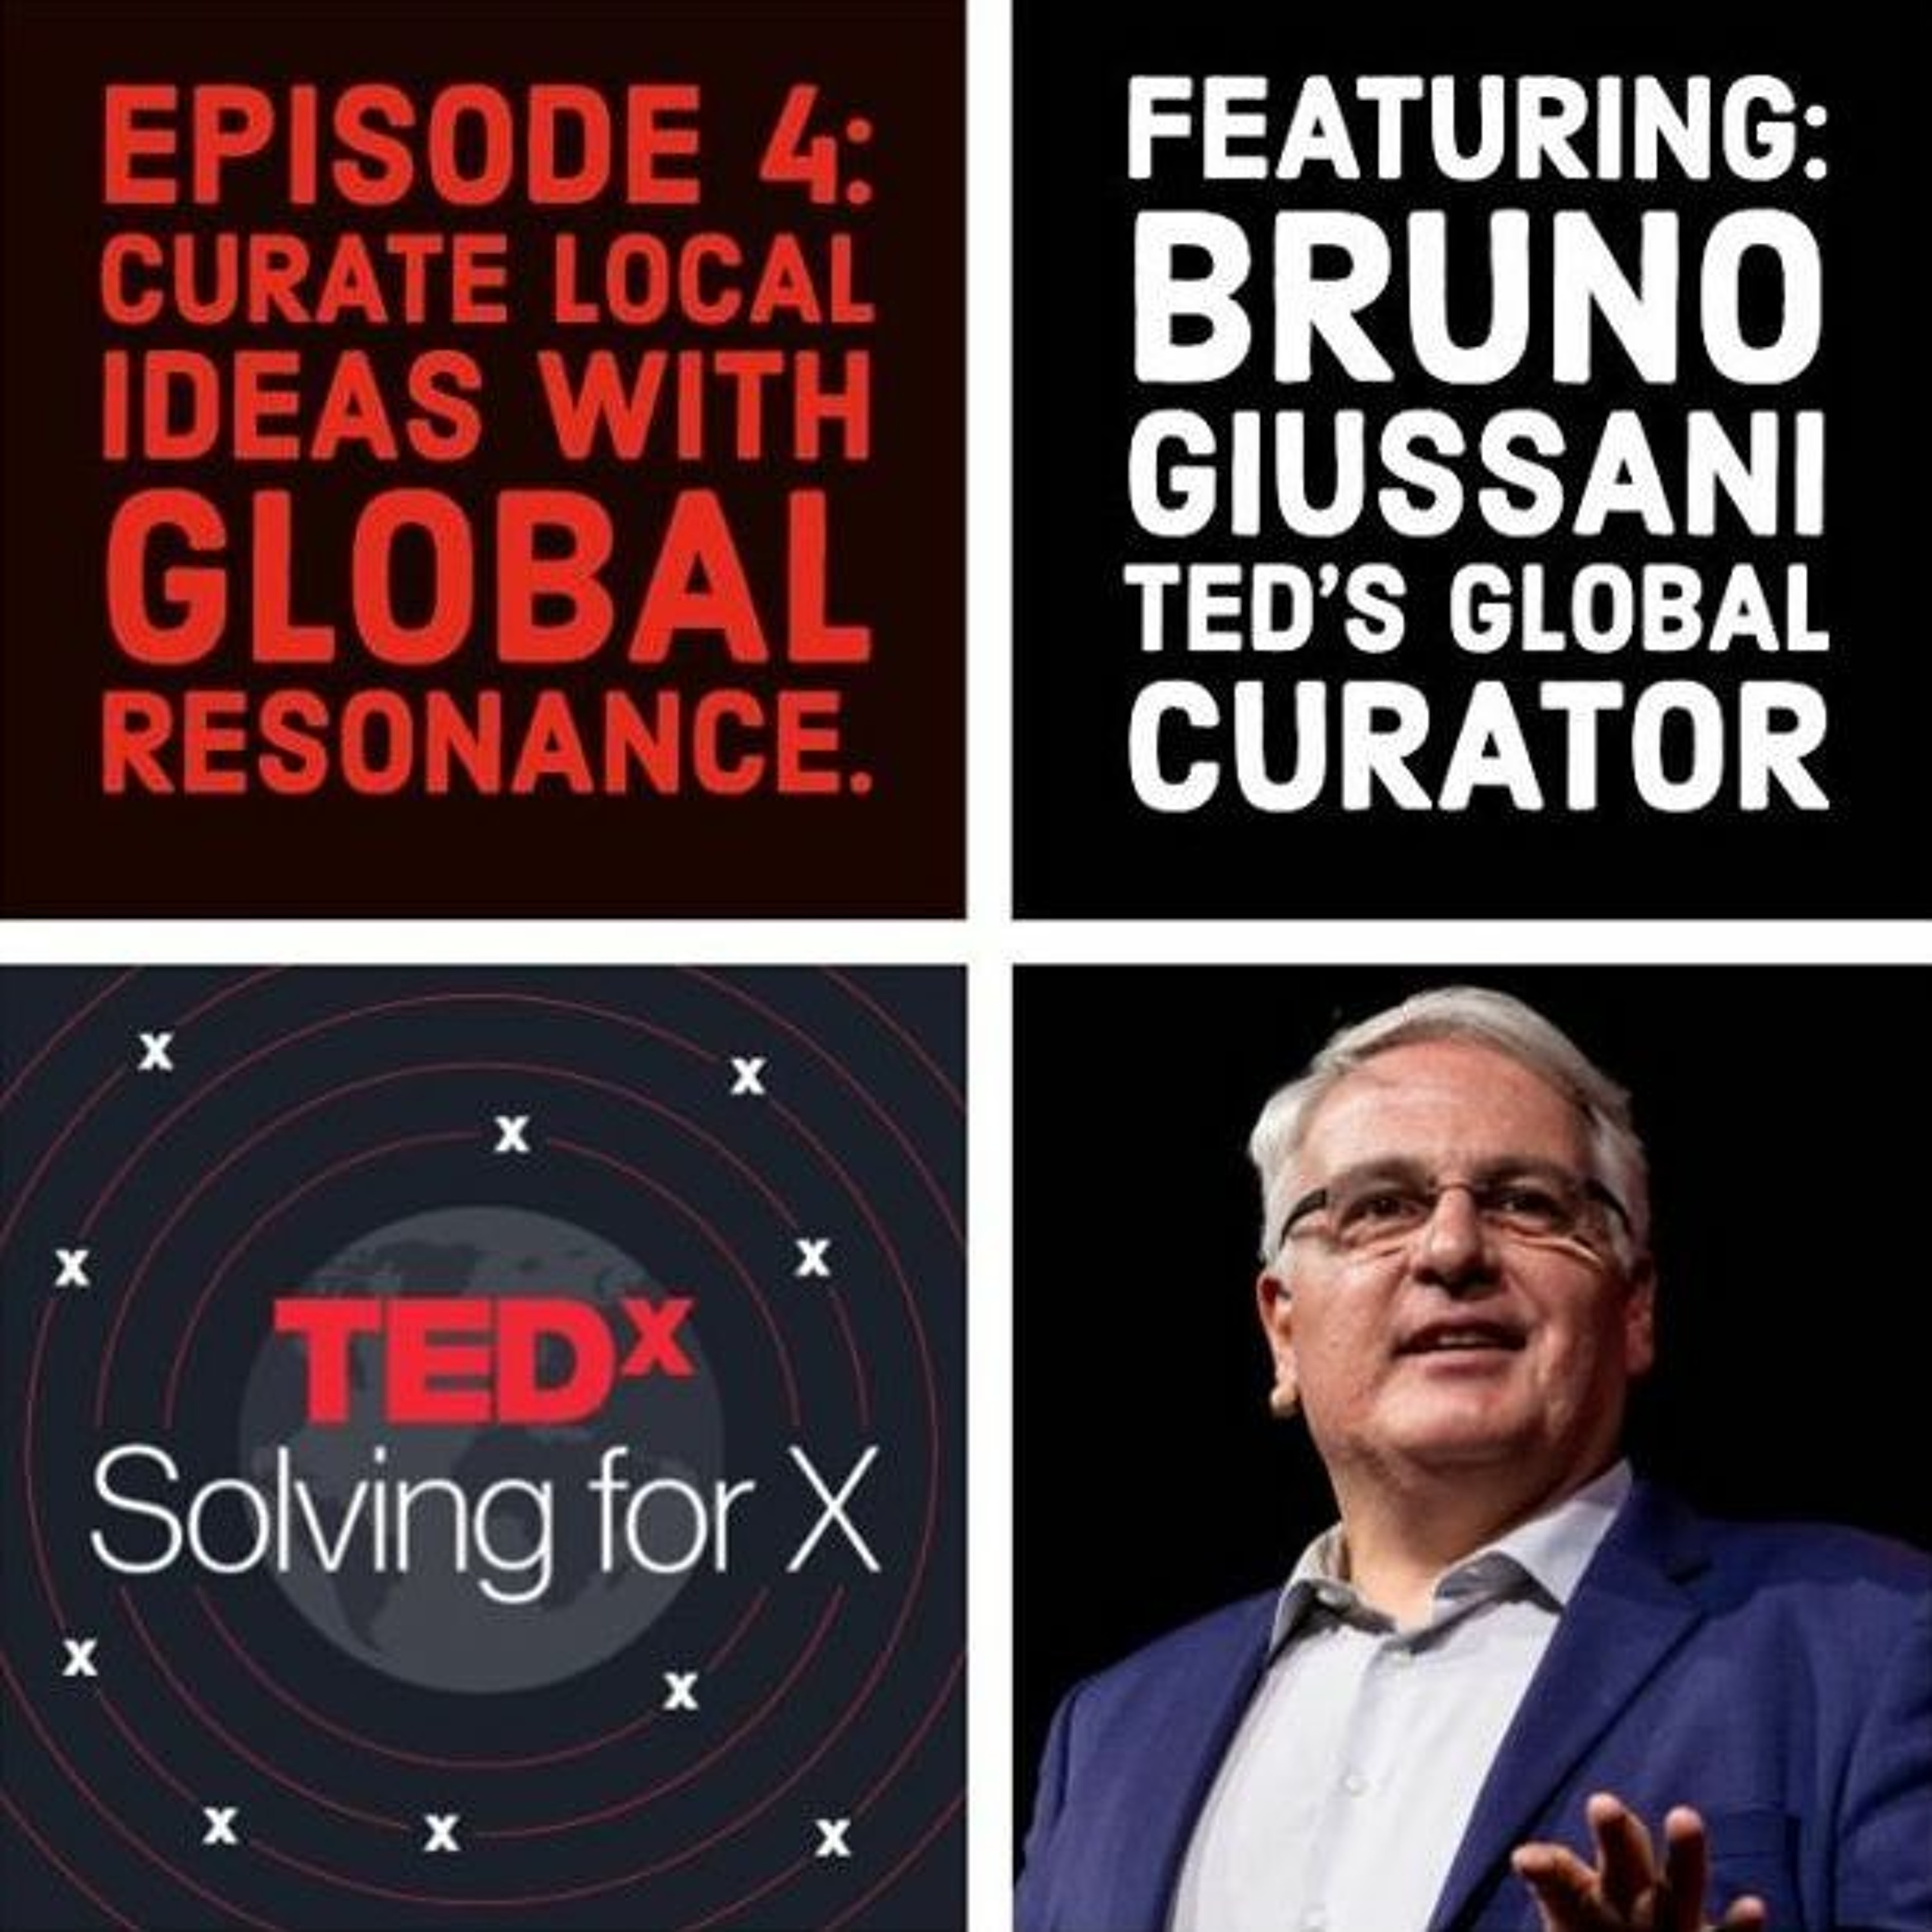 Curate local ideas with global resonance — Bruno Giussani, TED Global Curator